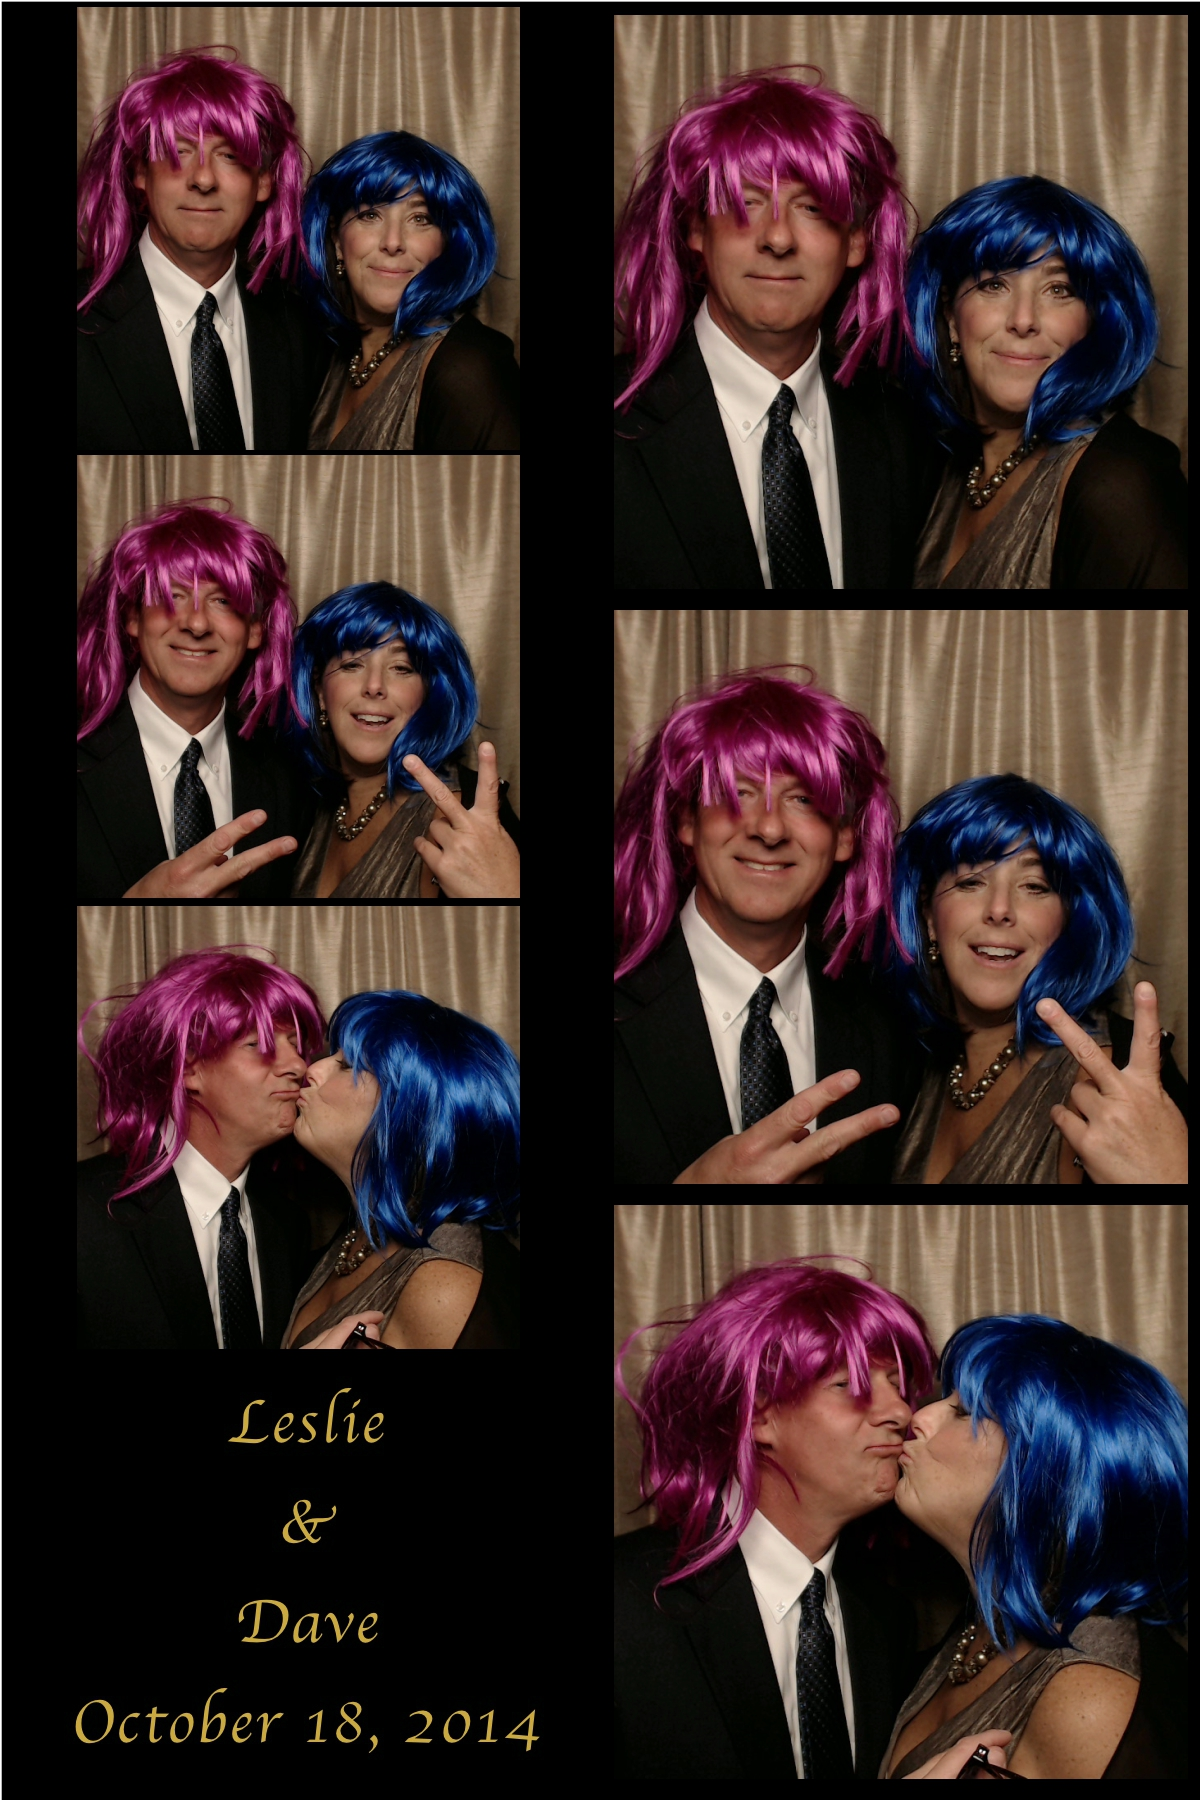 Leslie and Dave Oct 18 2014